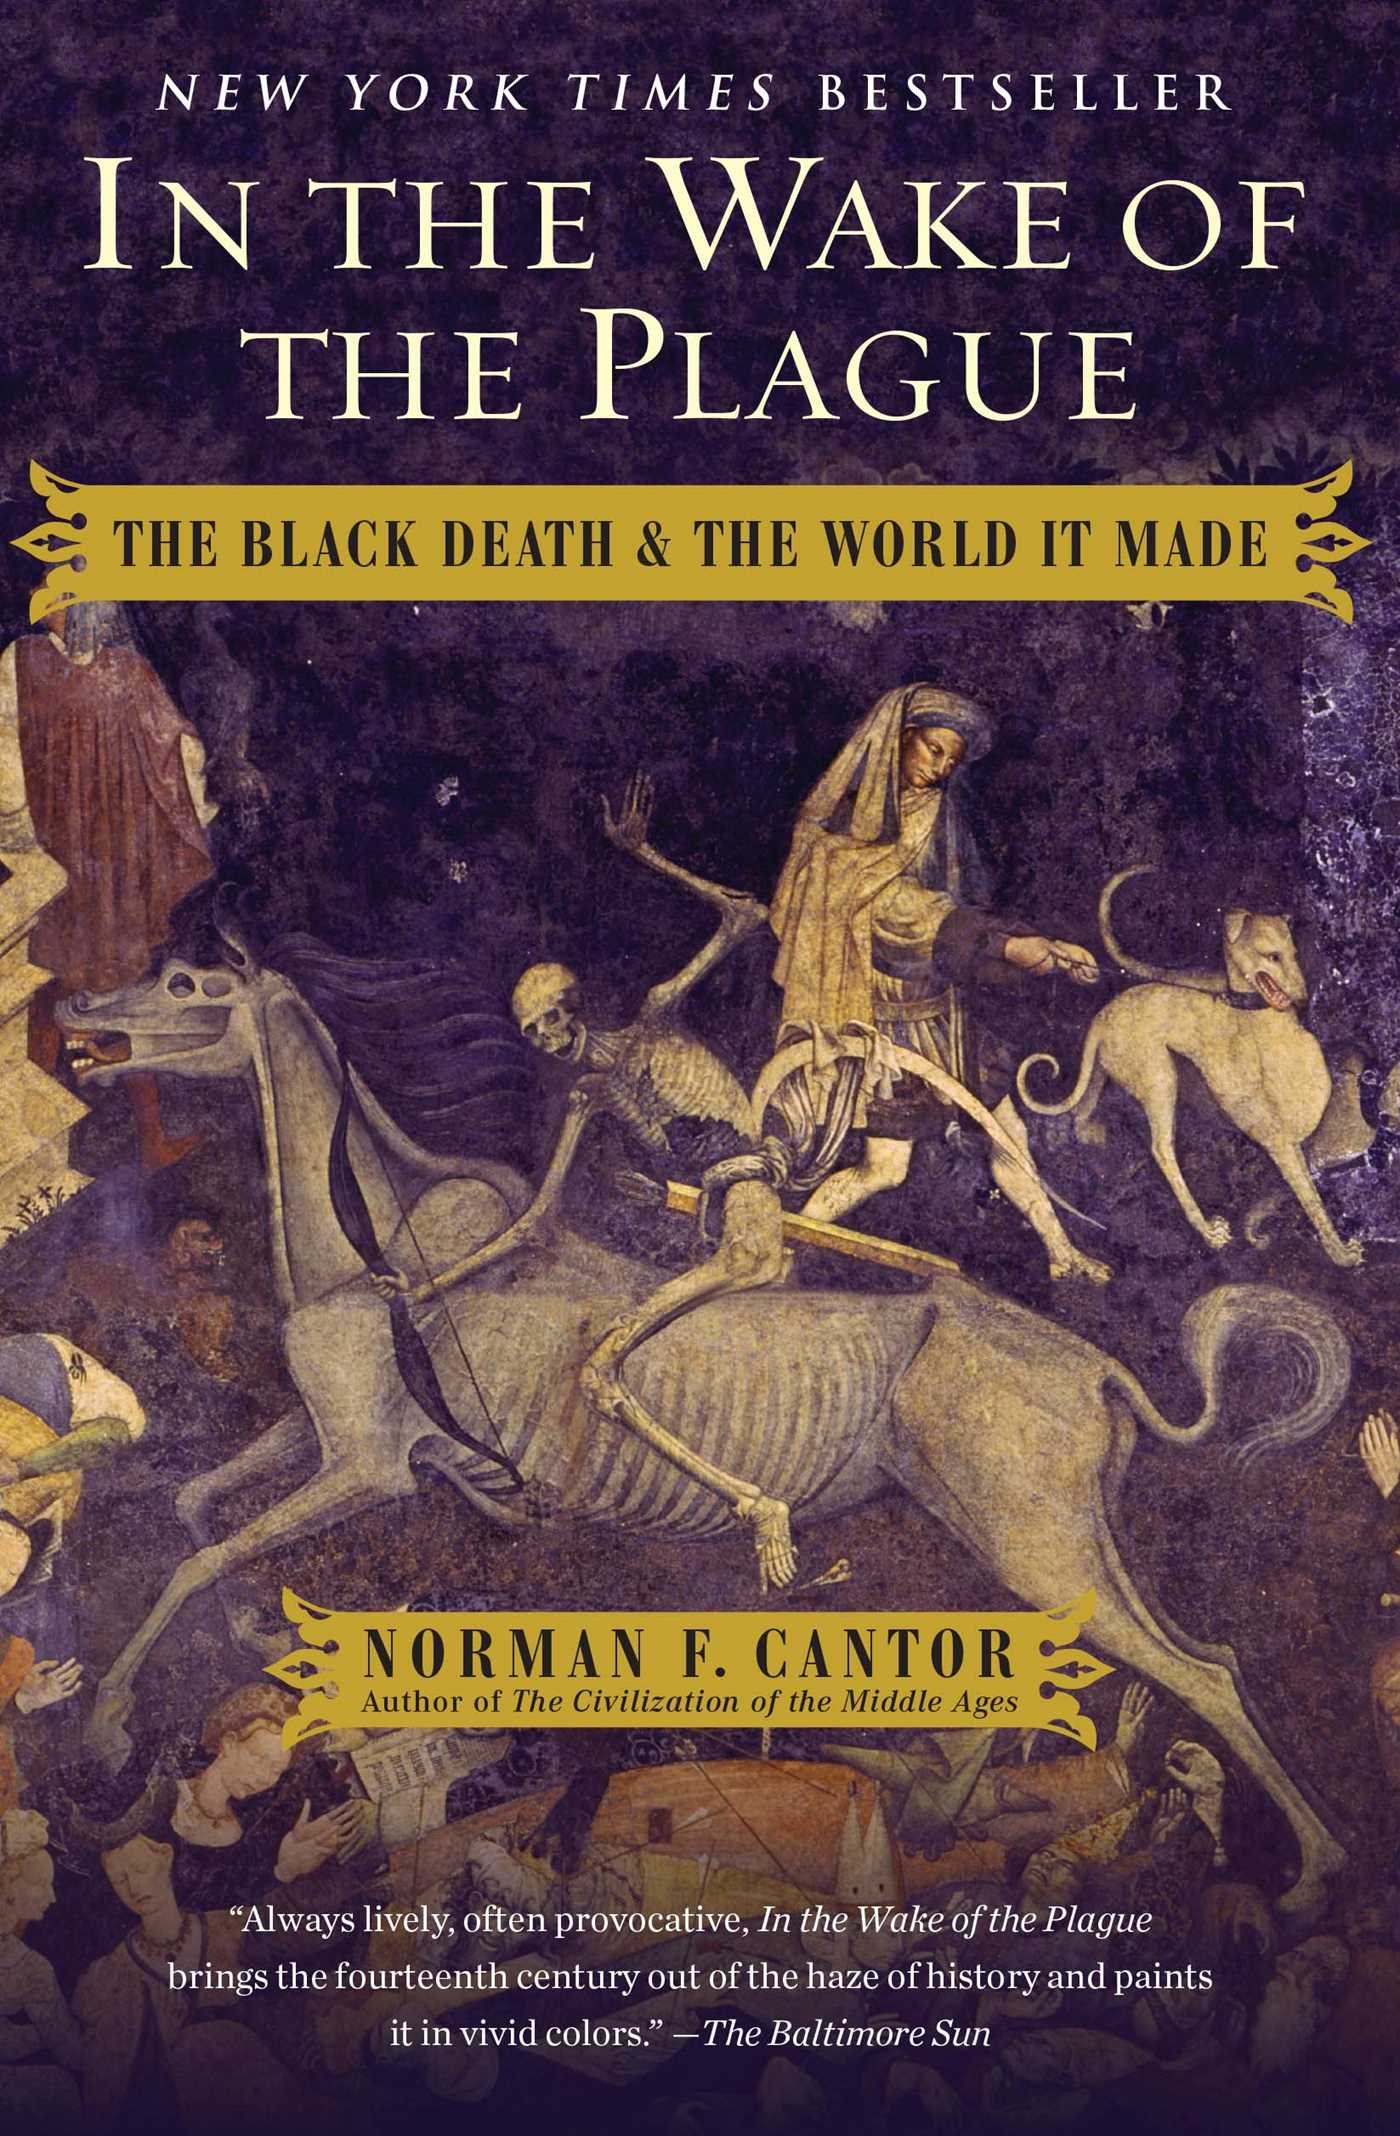 analysis of in the wake of the plauge Touching upon seigneurial reaction in the wake of plague and peasant, particularly villain, resistance to this, professor platt proceeds to discuss some of the recent literature describing late medieval developments in the common law and in office holding.